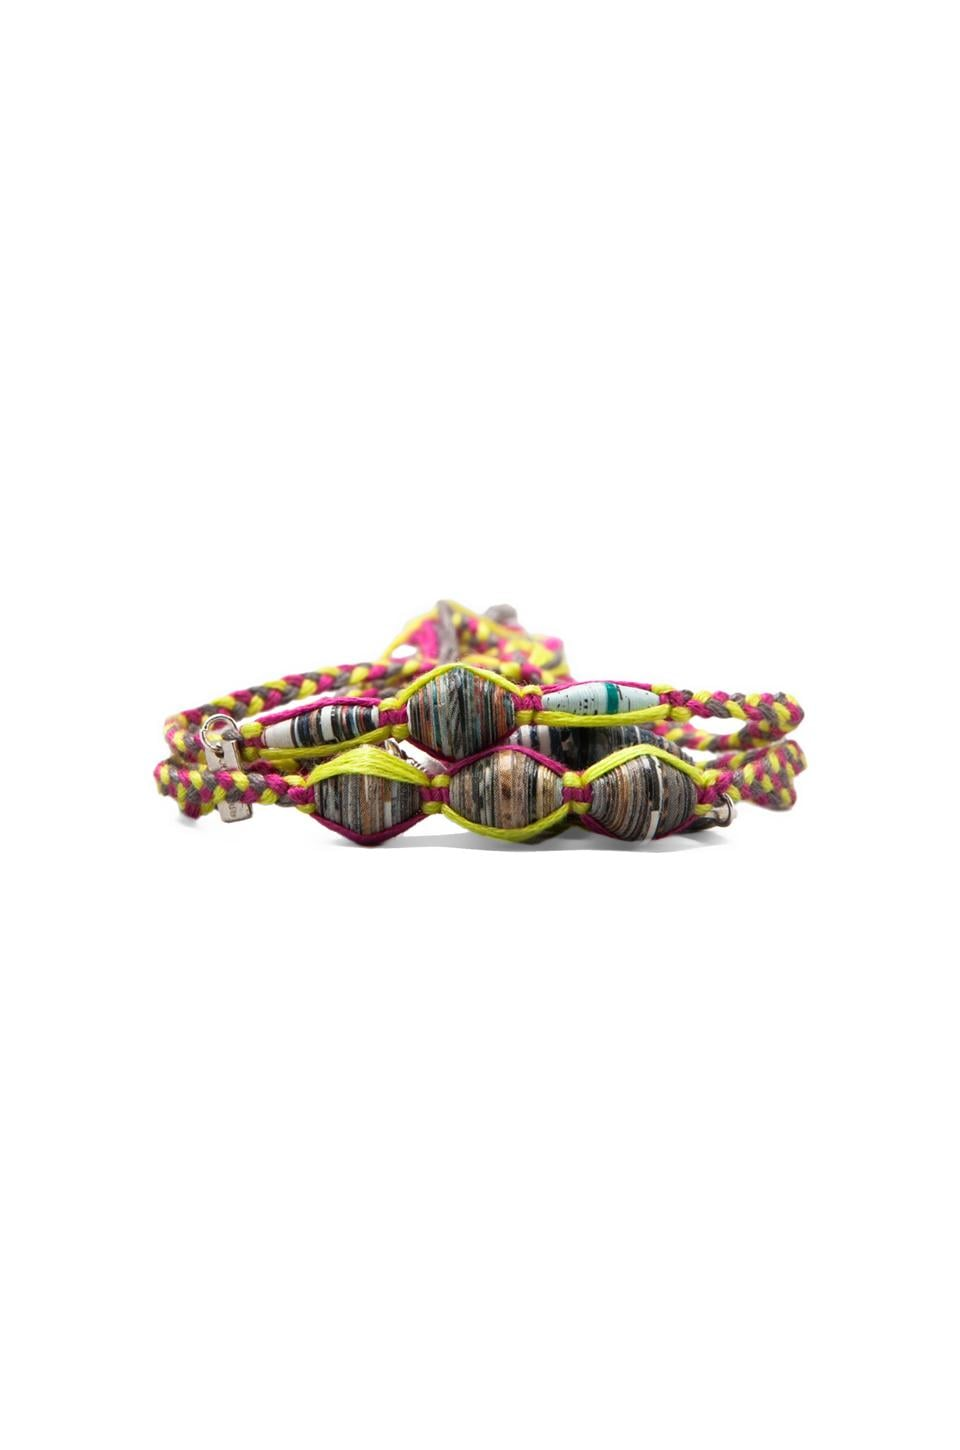 CHAN LUU Beaded Bracelet Set Mix in Neon Fuchsia